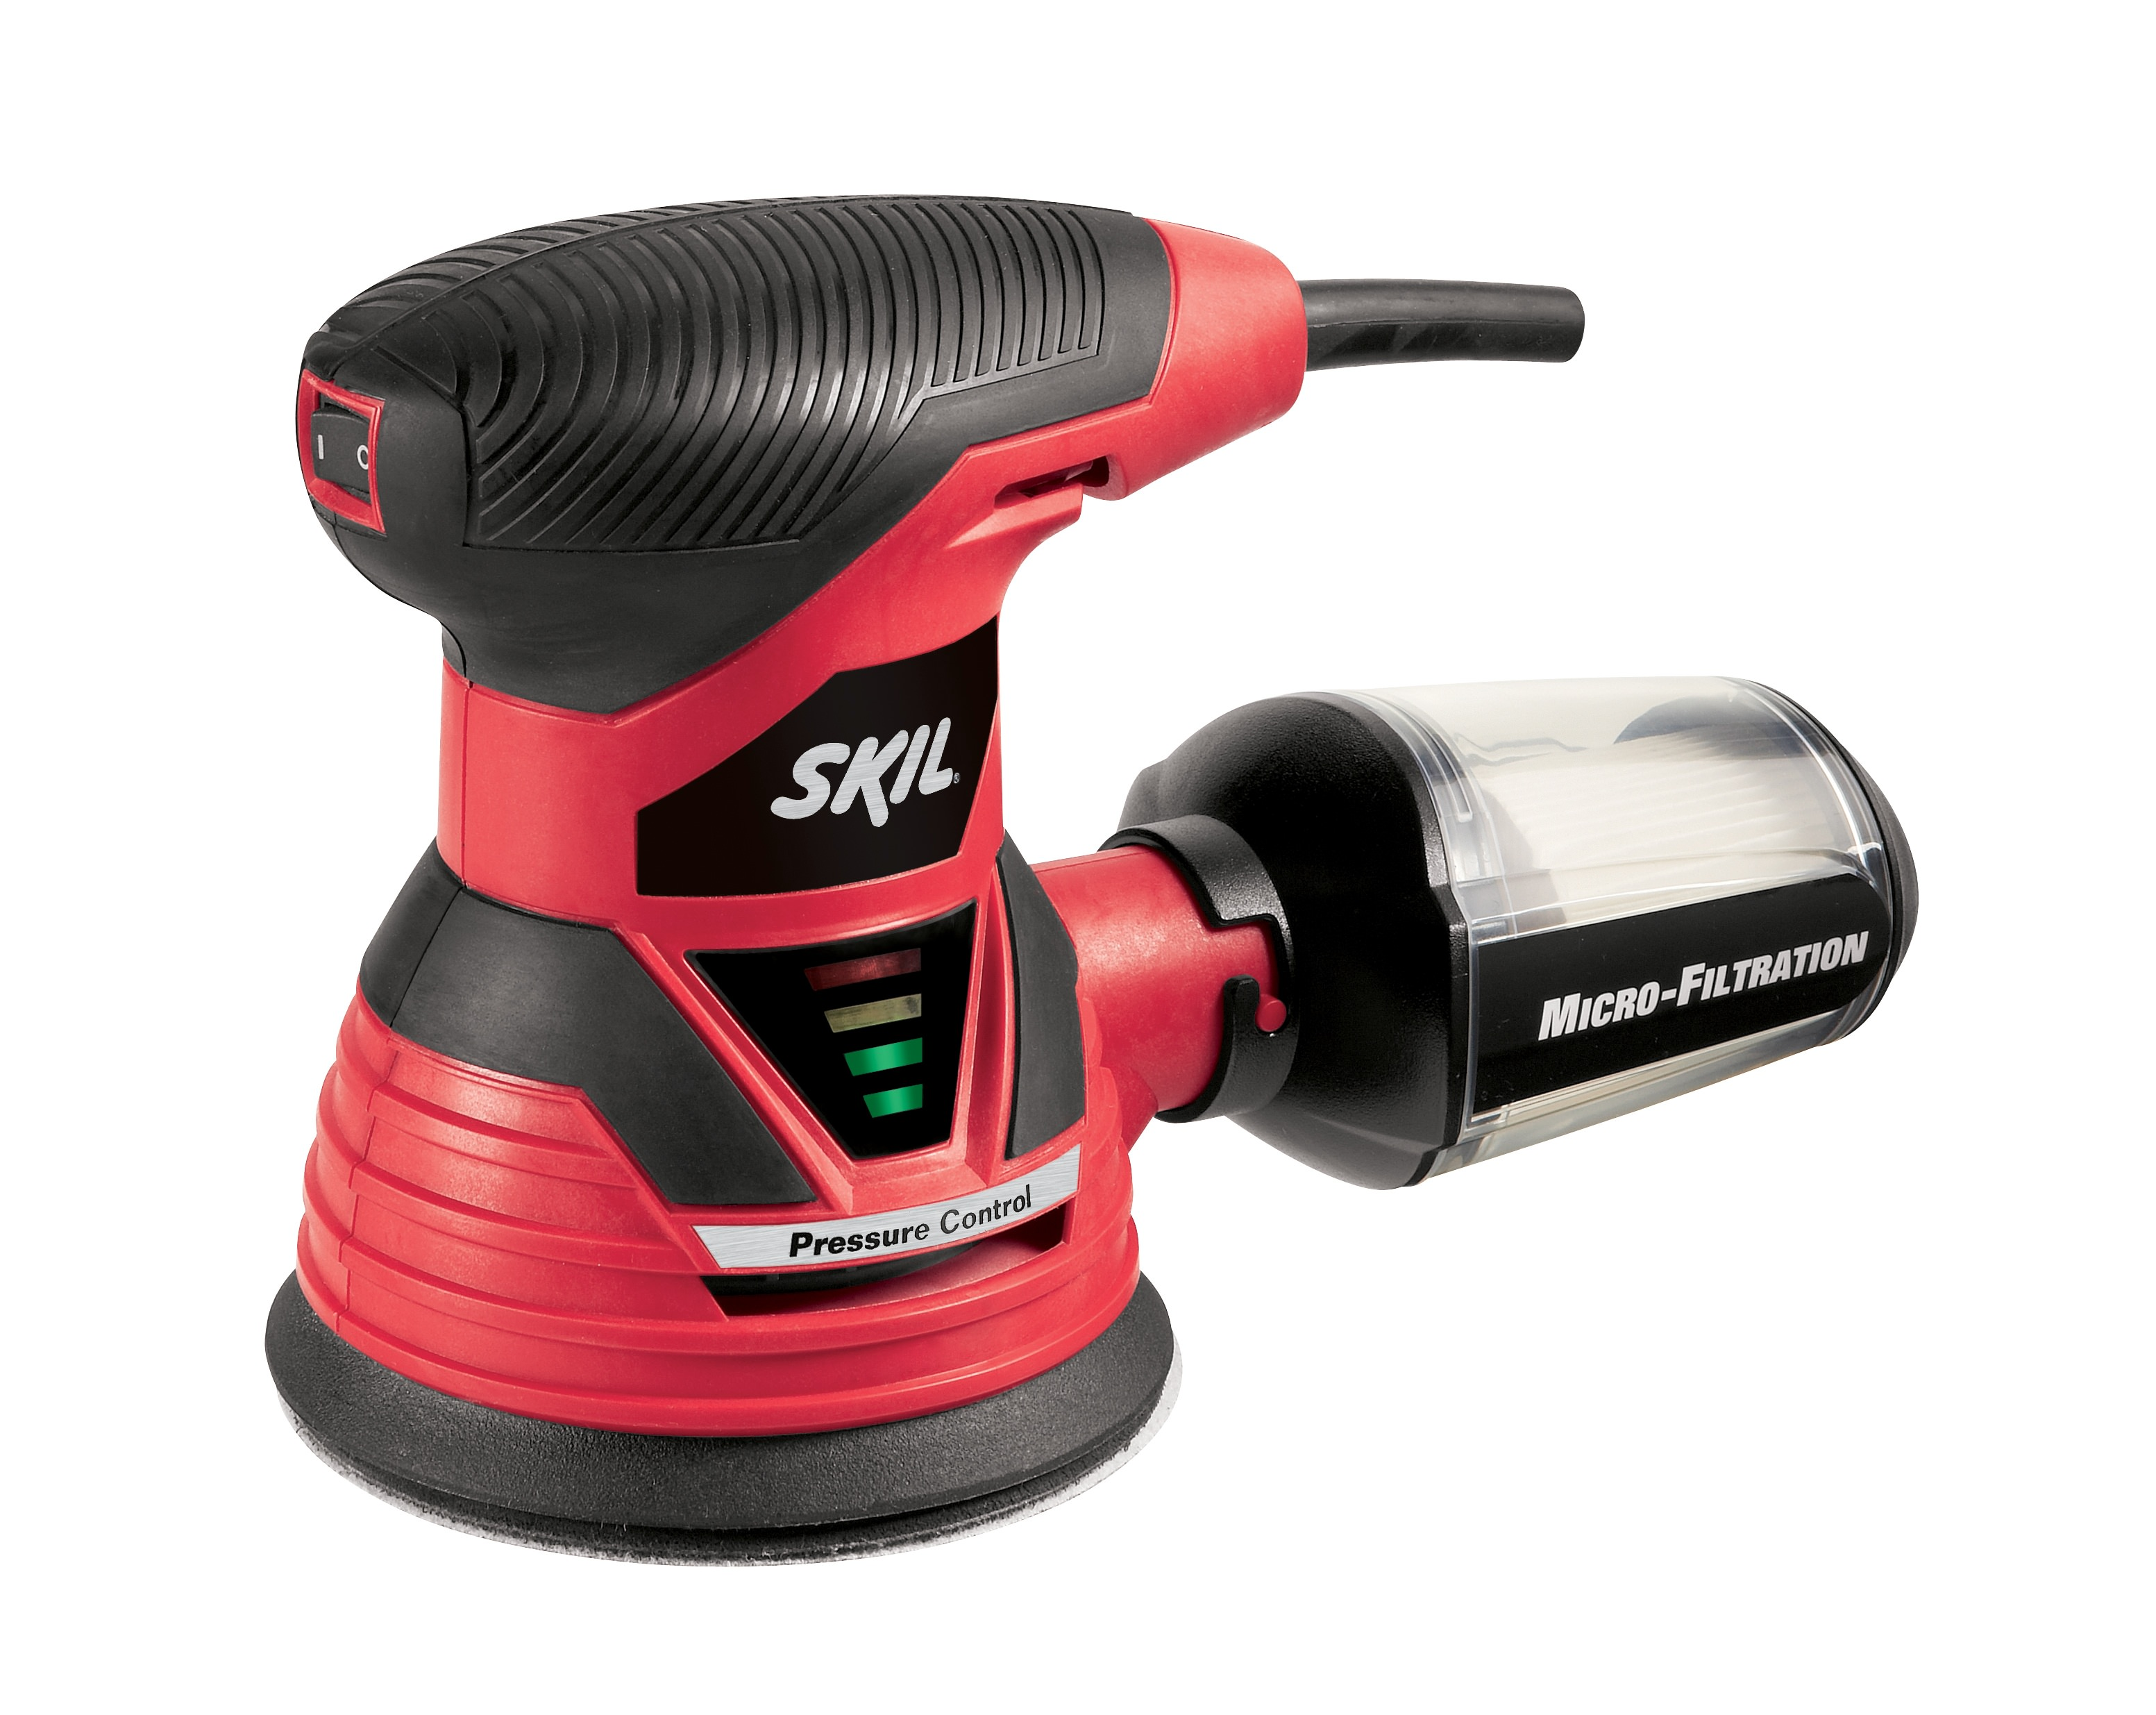 SKIL 7492-02 Random Orbit Sander by Robert Bosch Tool Corporation